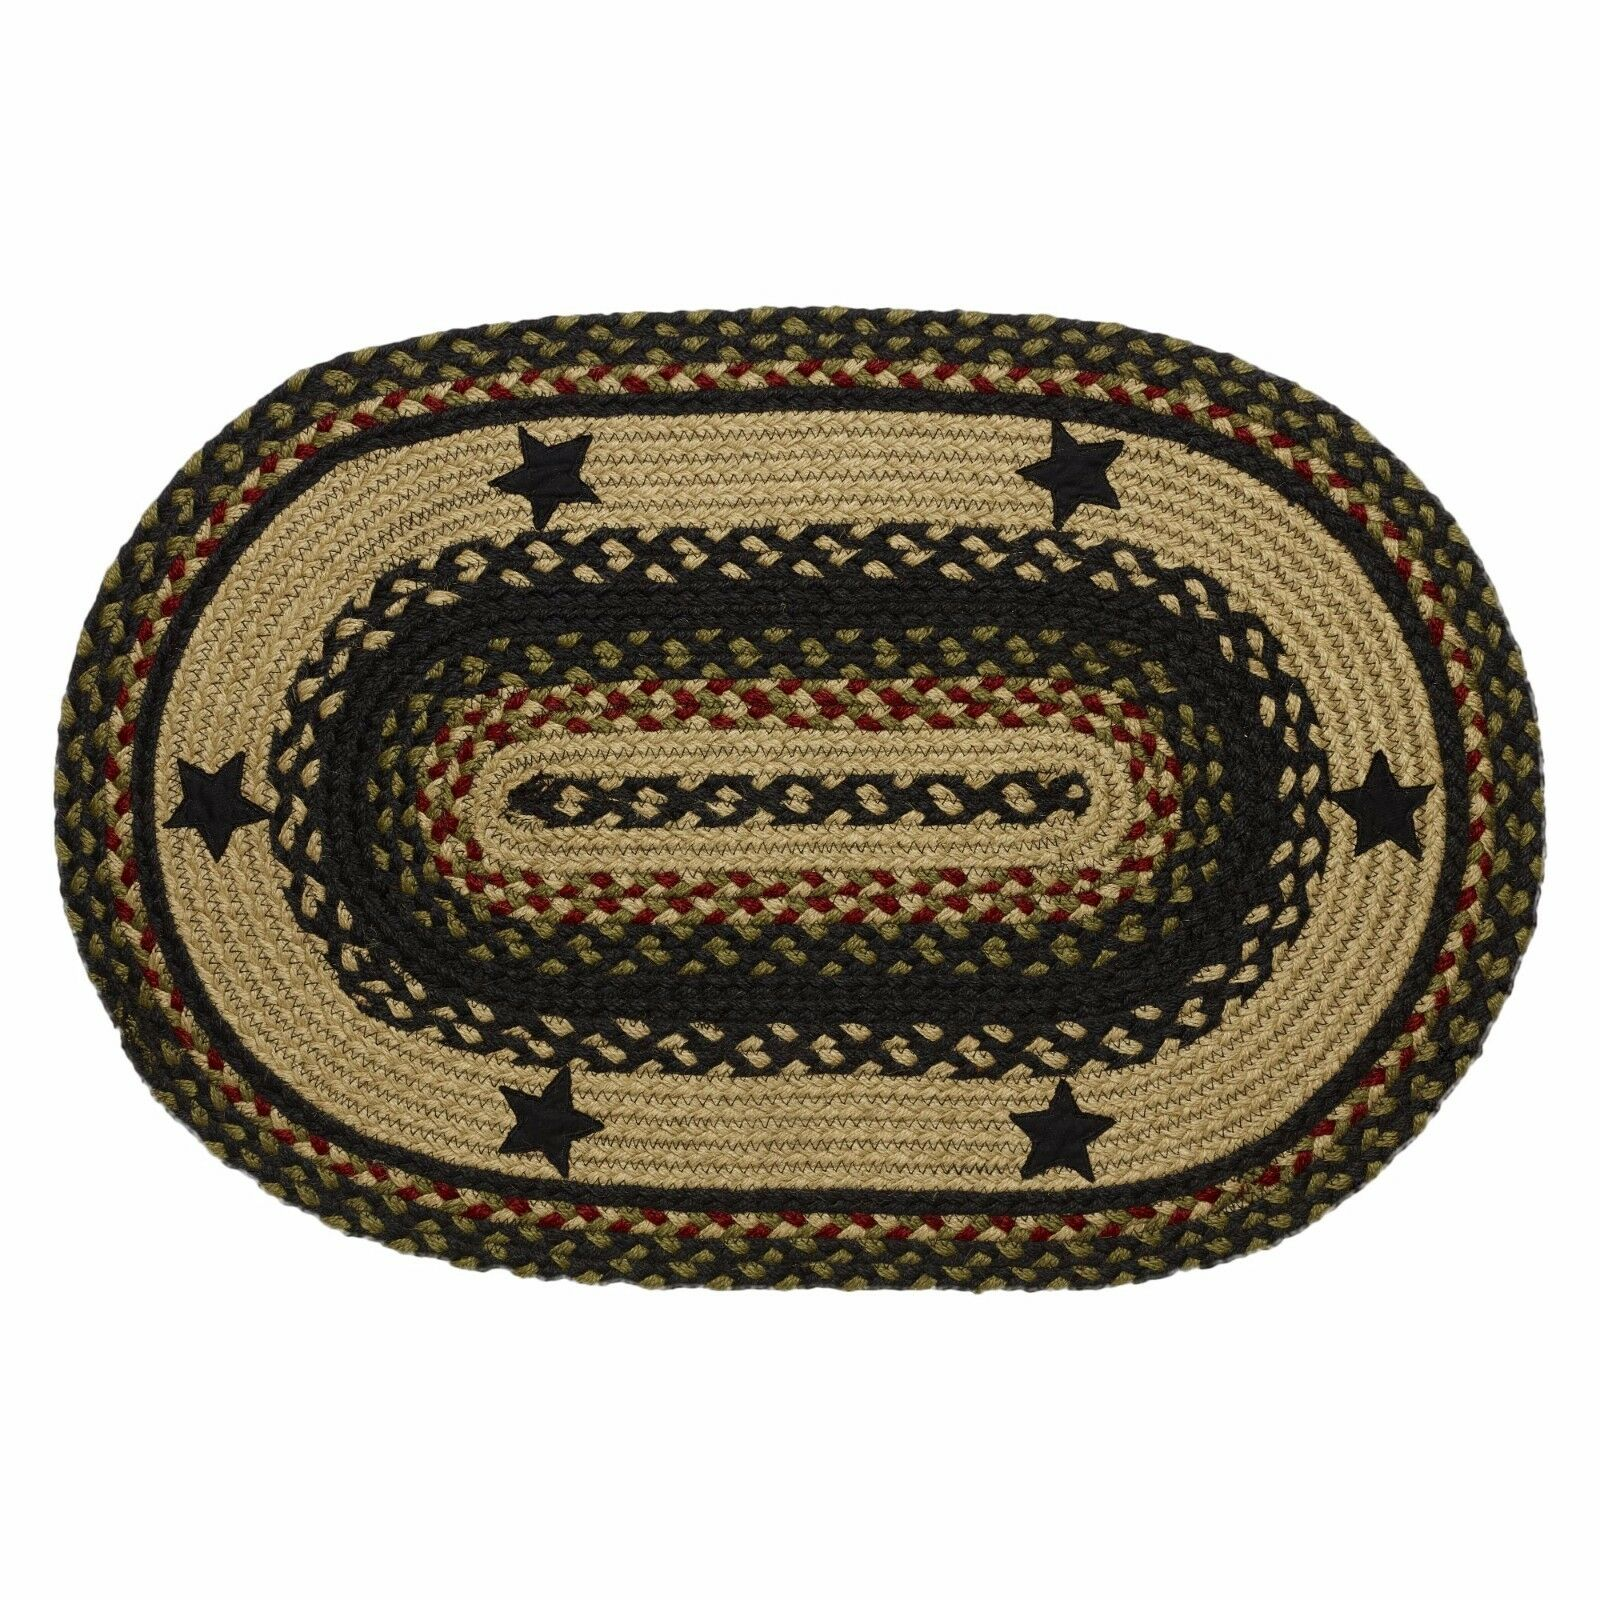 "Braided Rugs: IHF Home Decor Braided Area 22"" X 72"" Oval Carpet Accent"